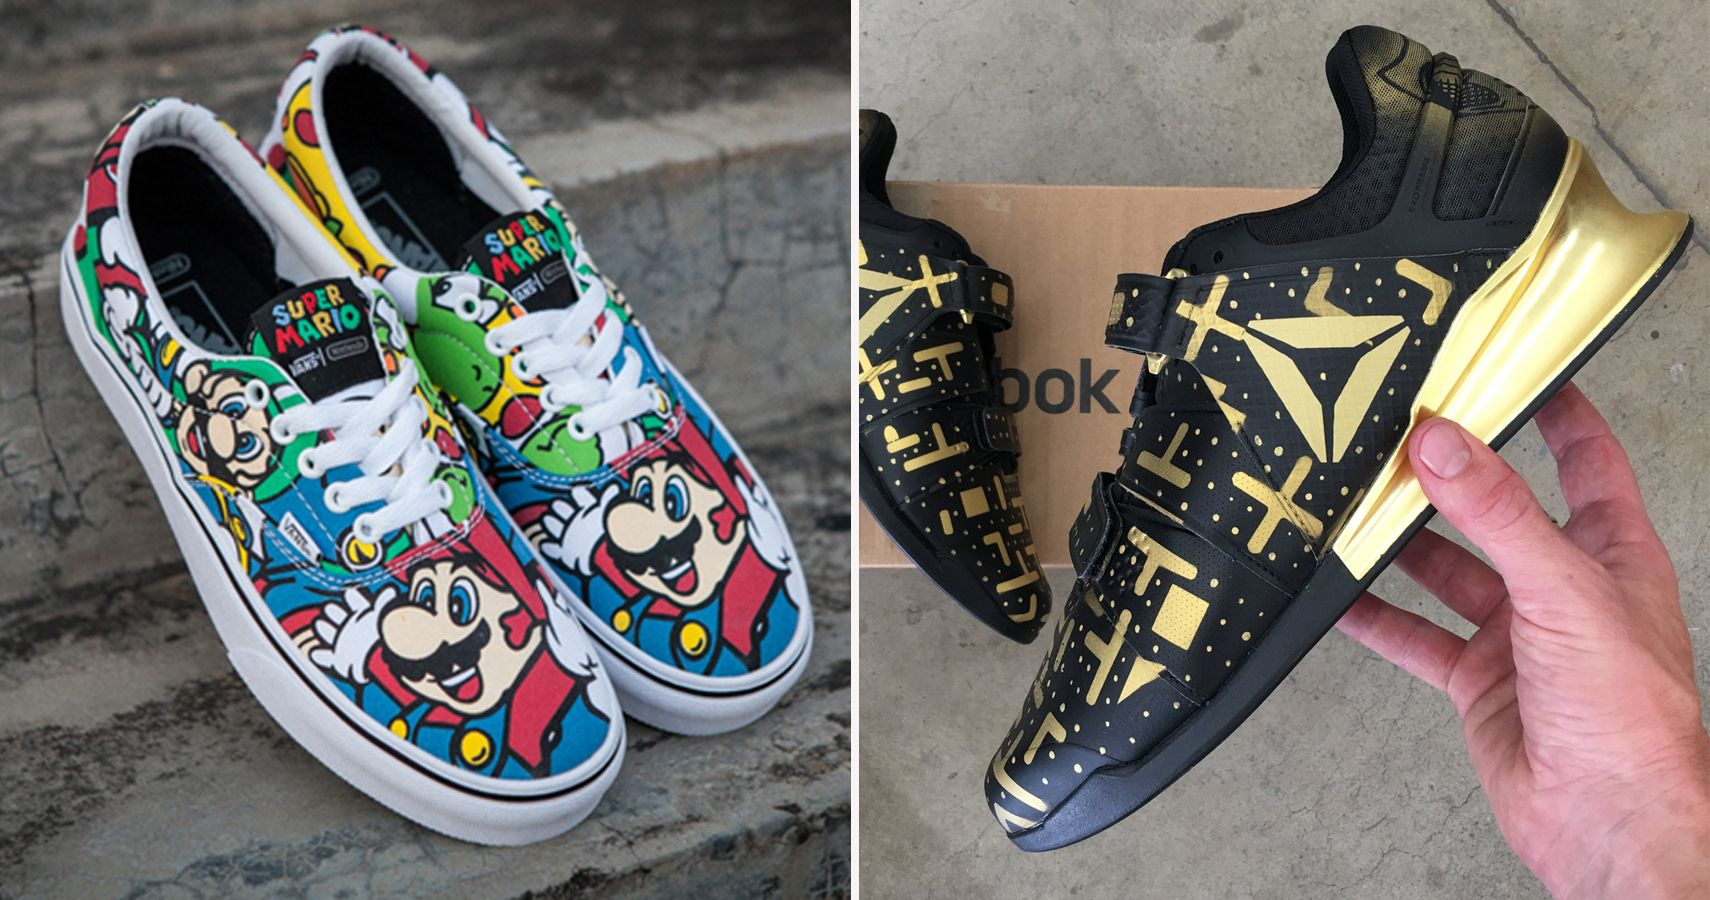 15 Crazy Video Game Shoes We Need And 15 That Are Just